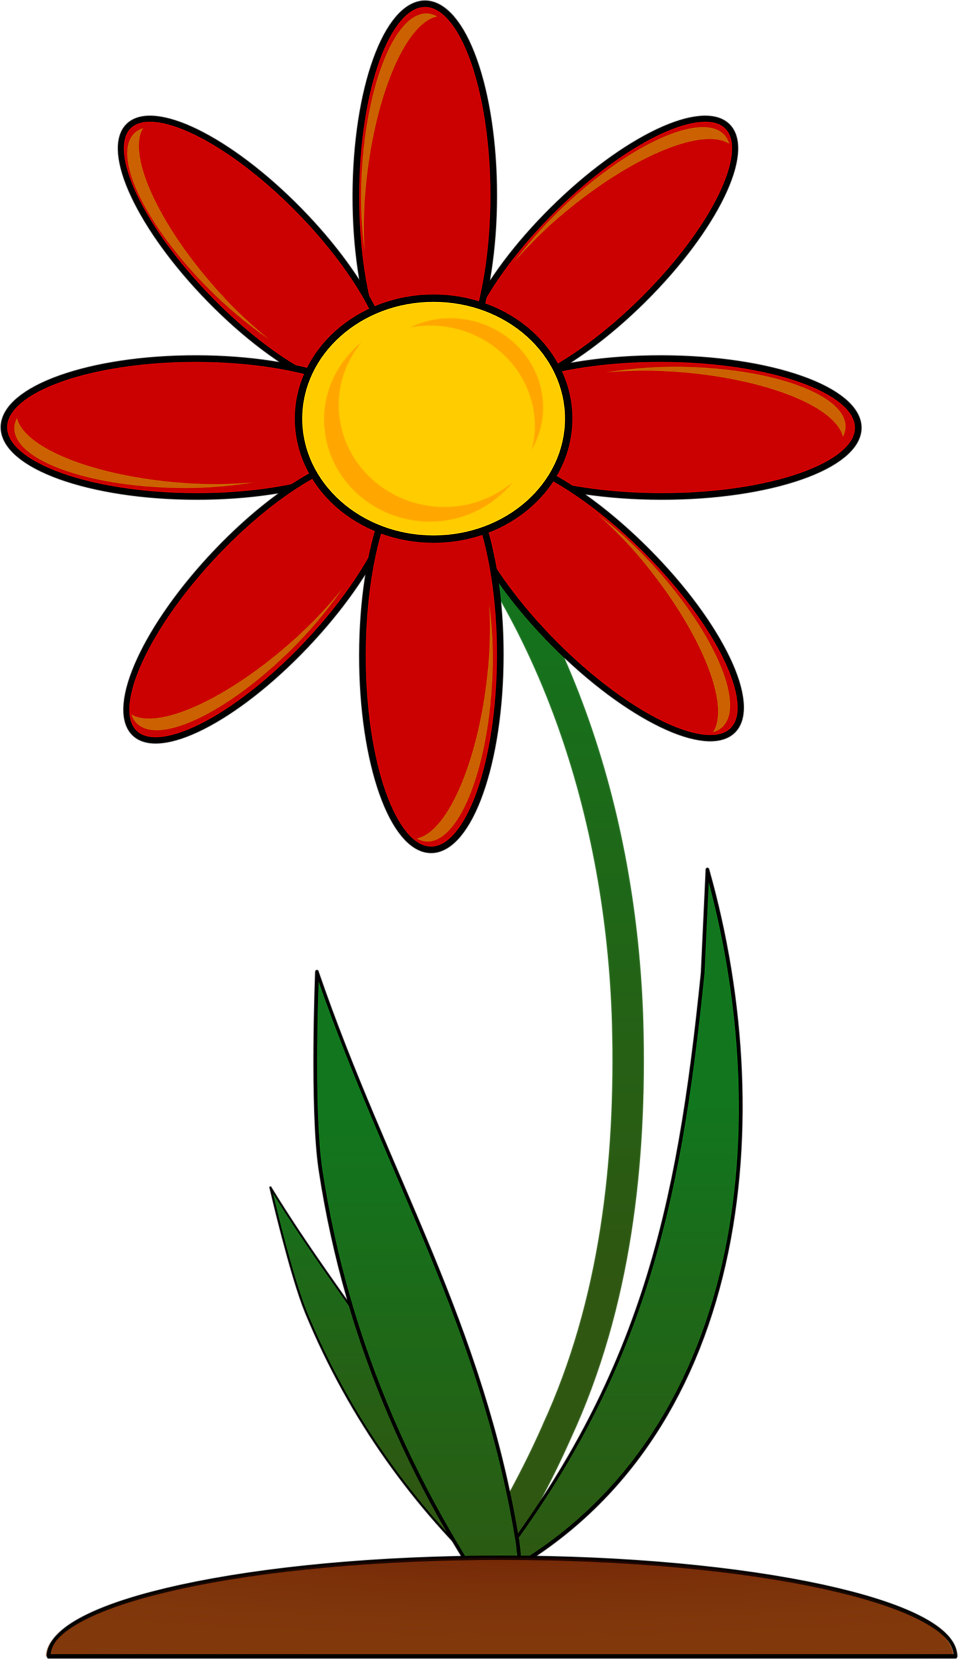 Flower in clipart. Red free stock photo